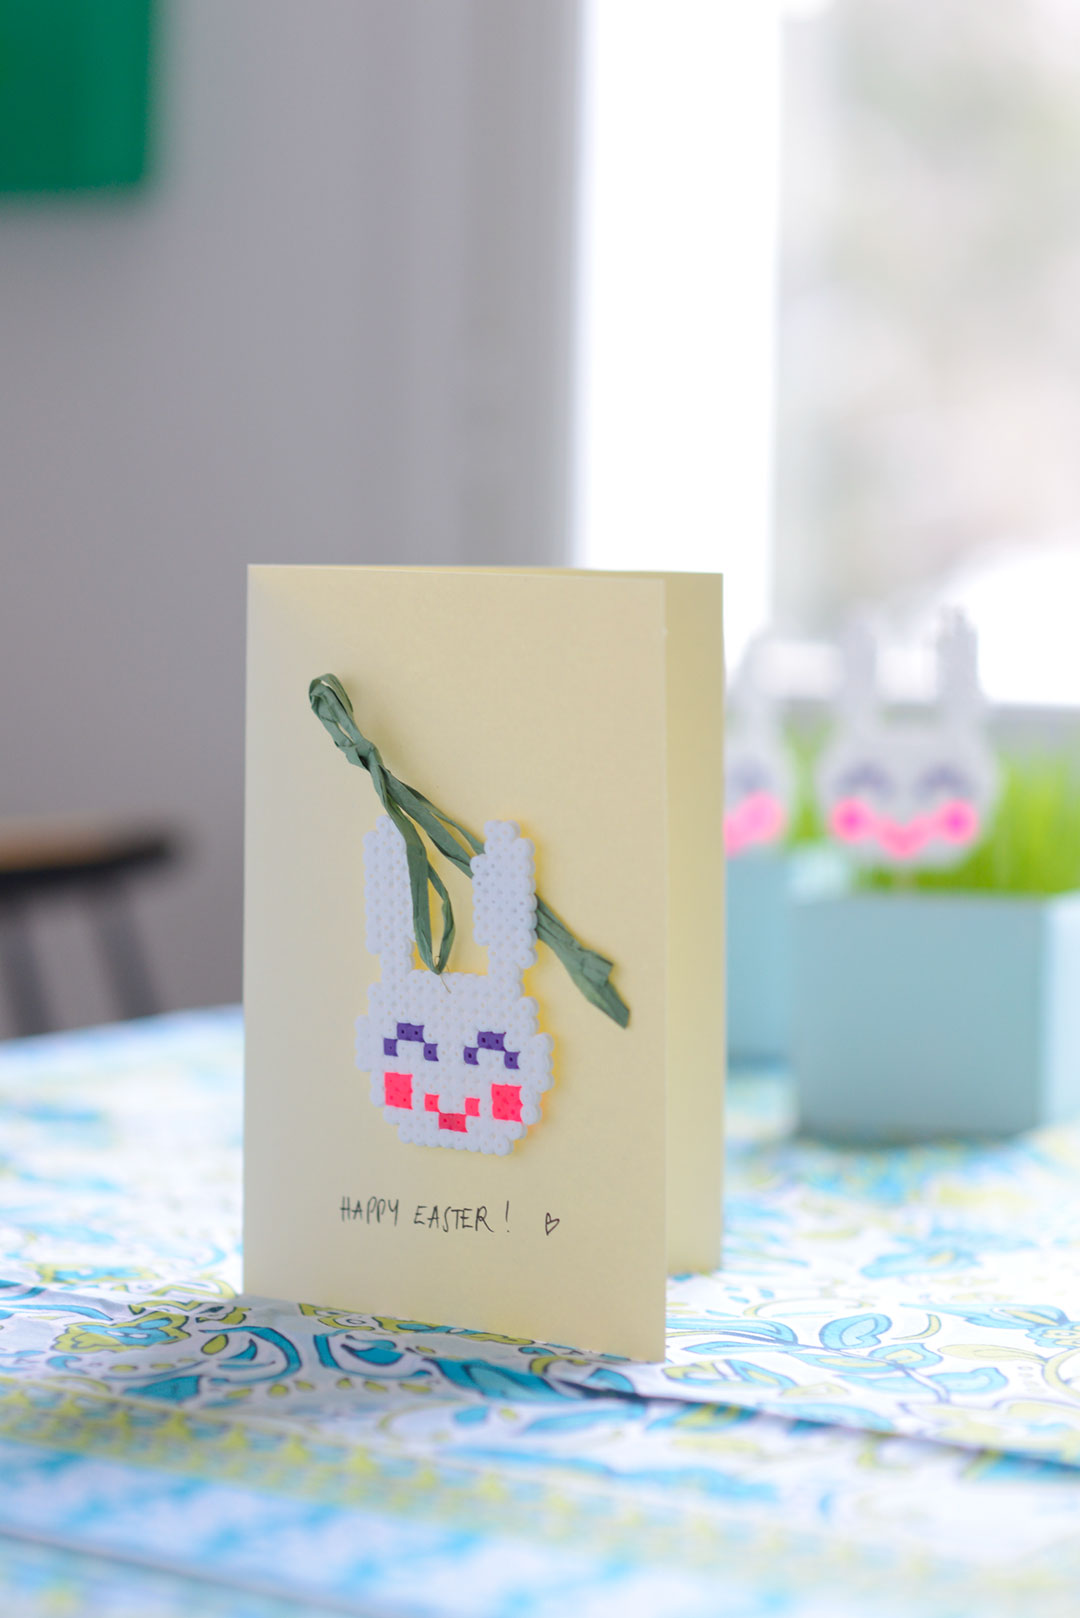 Greeting card with a cute Hama bead bunny